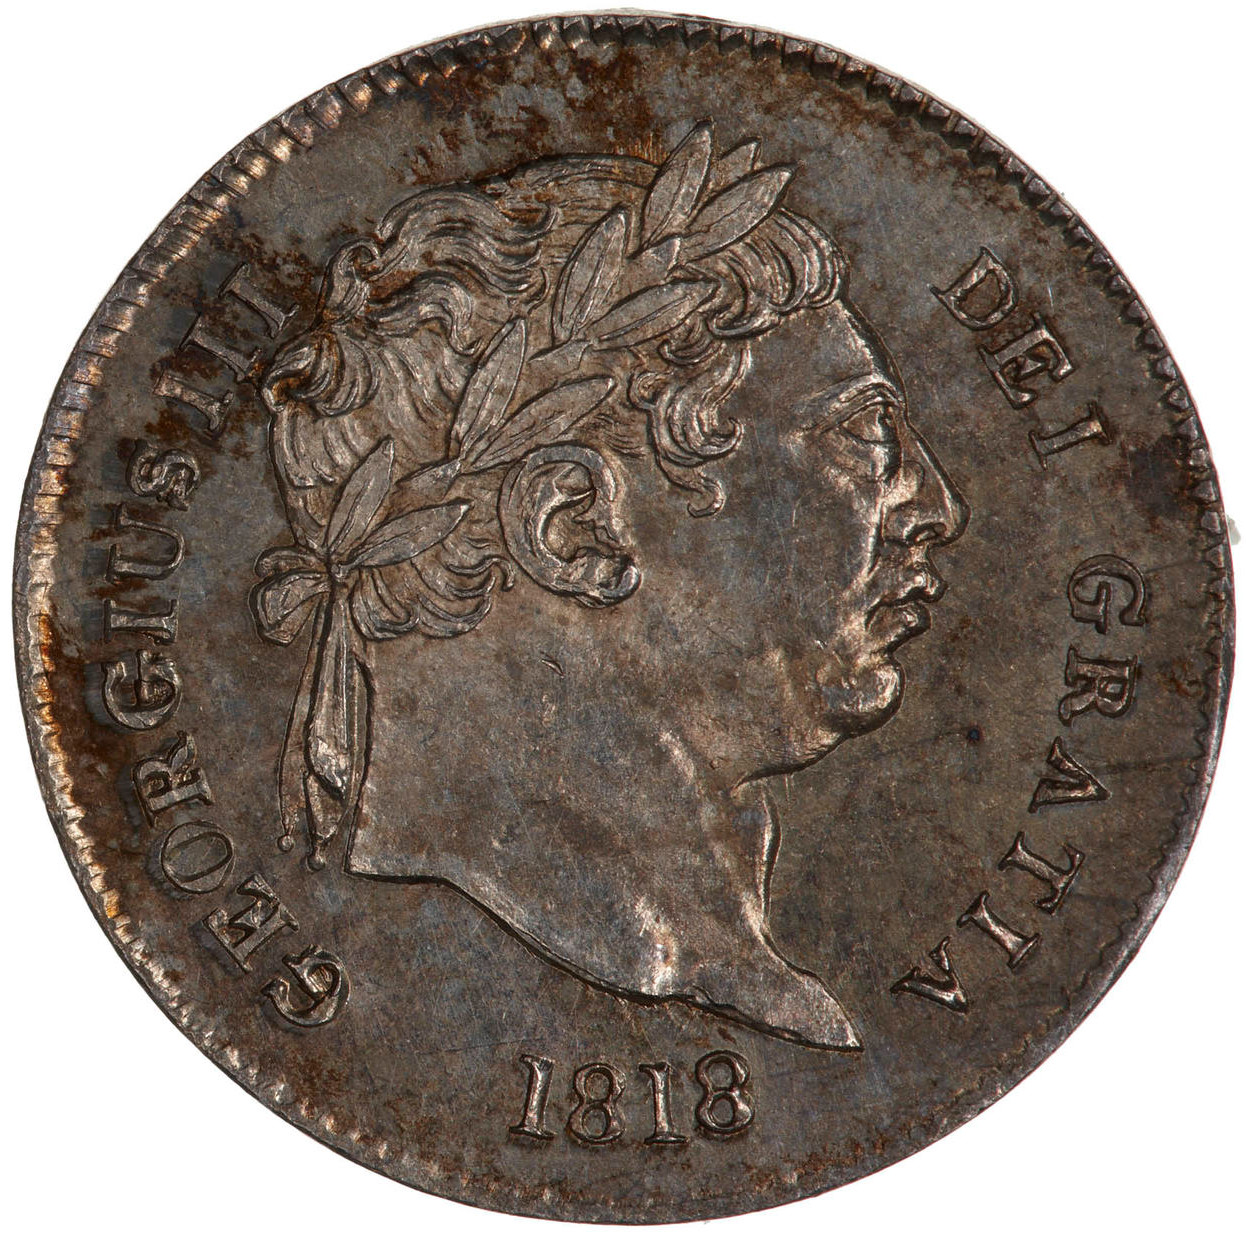 Threepence (Circulating): Photo Coin - Threepence, George III, Great Britain, 1818